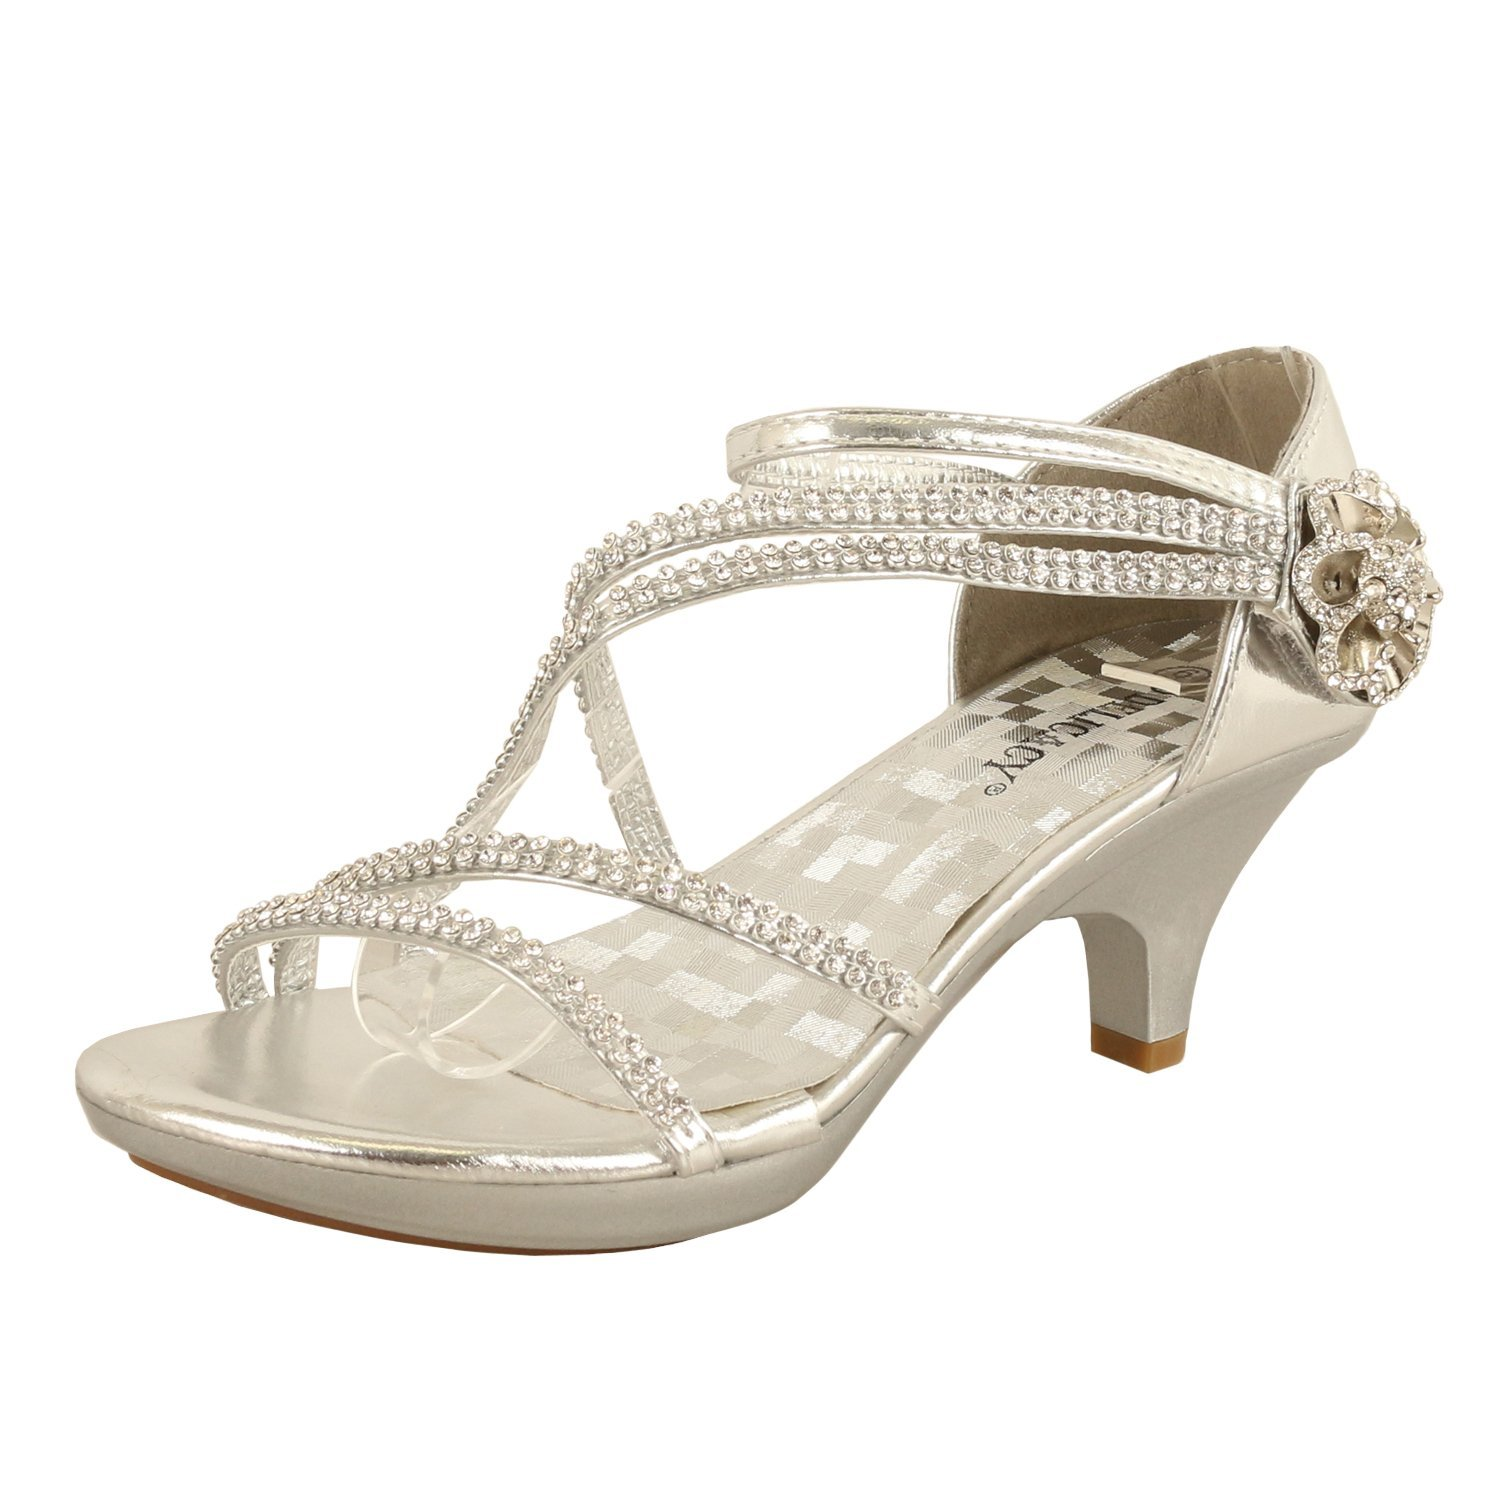 5806a67d72c3 Get Quotations · Delicacy JJF Shoes Angel-62 Womens Strappy Rhinestone  Dress Sandal Low Heel Shoes